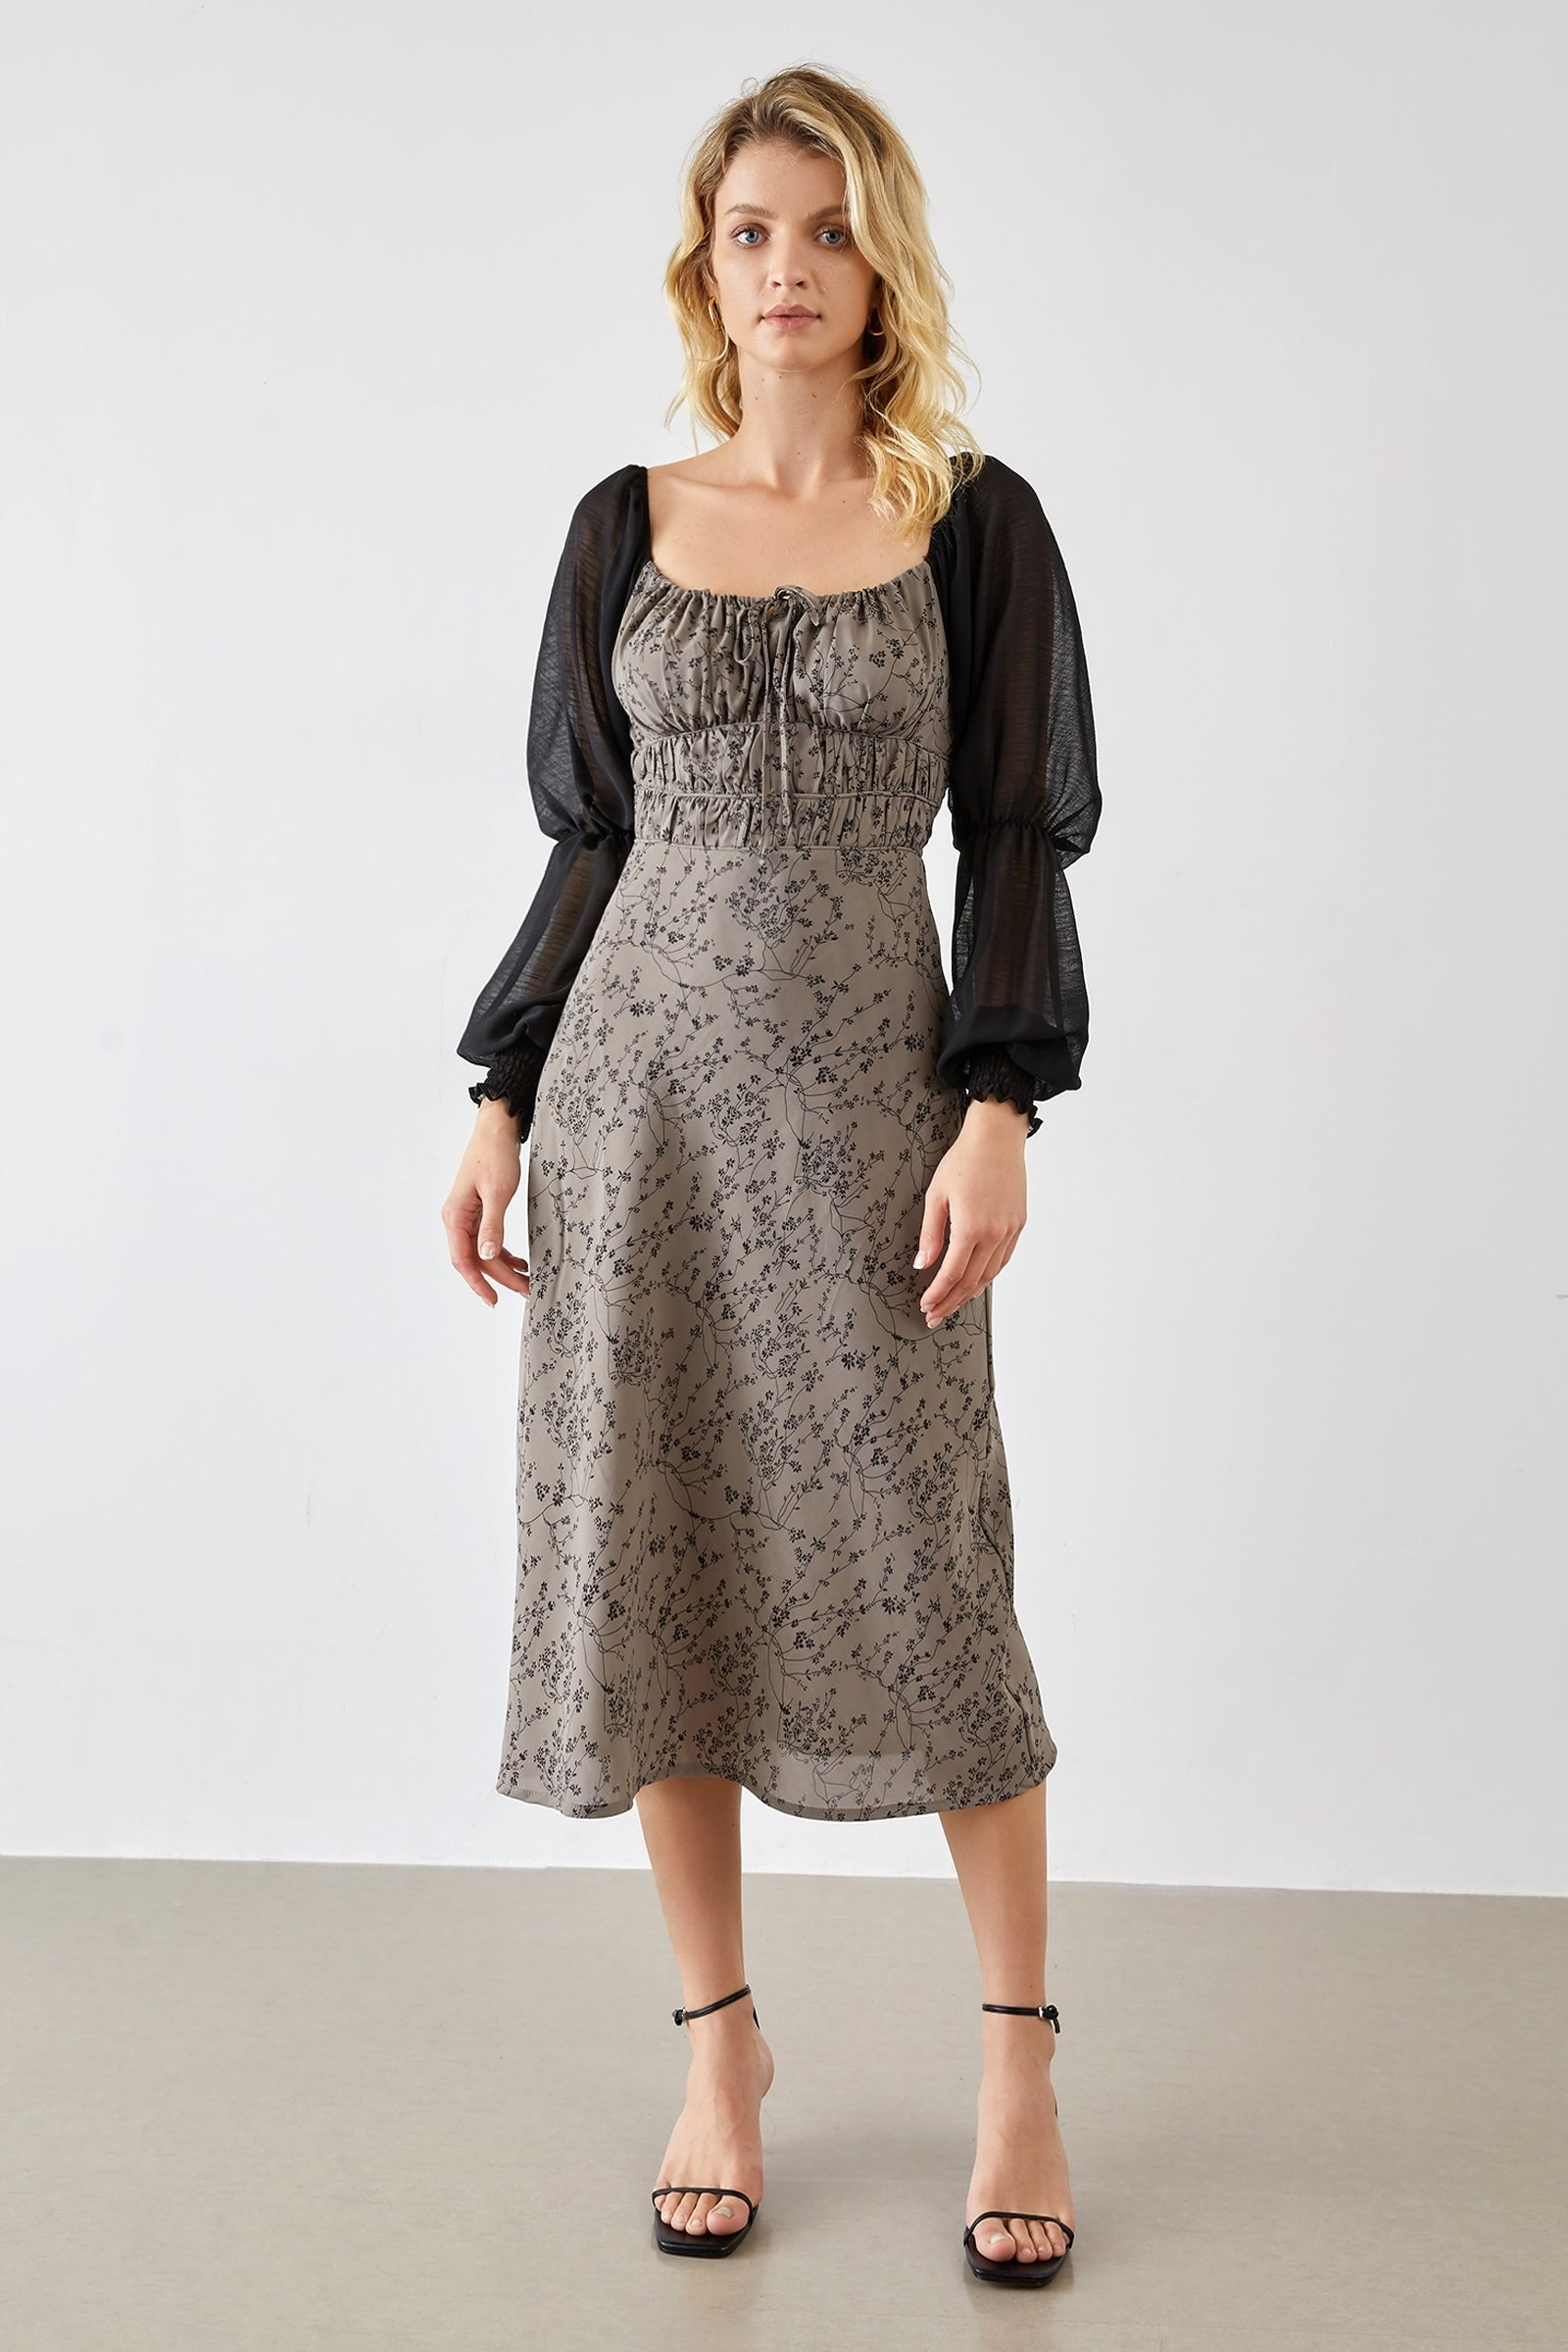 model wearing the mid-calf length grey dress with black floral patter and puffle black sleeves